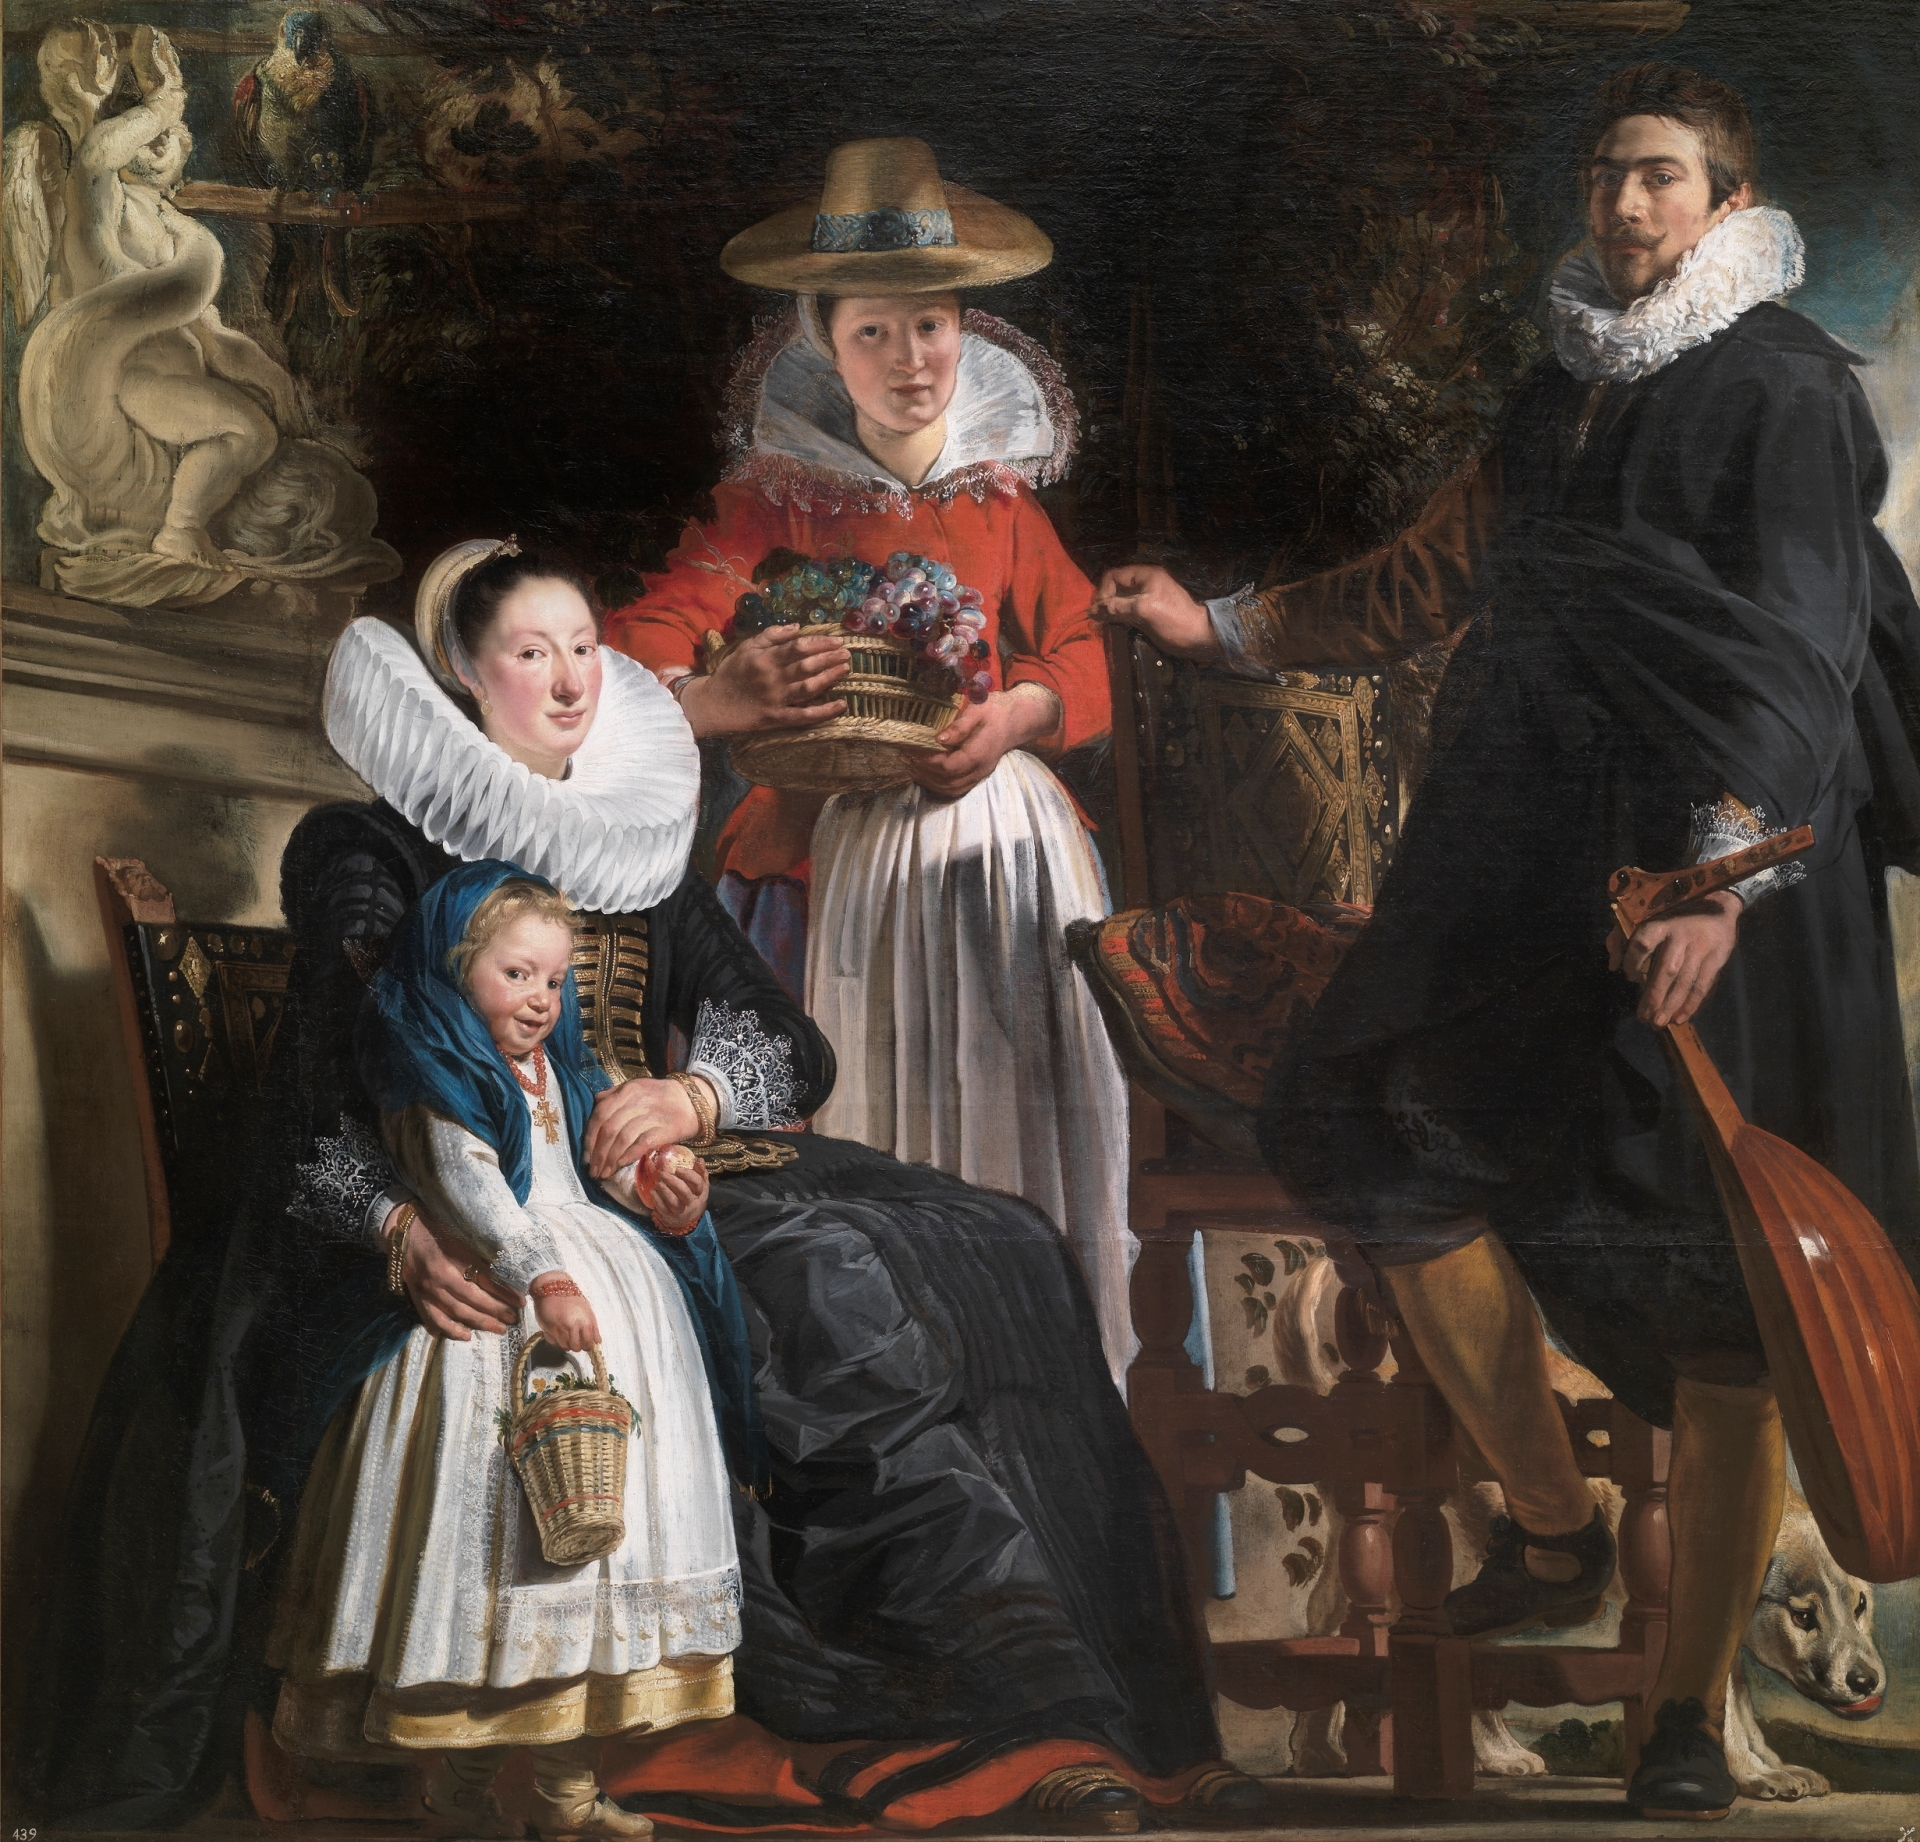 Jacob Jordaens: paintings with titles and descriptions 88